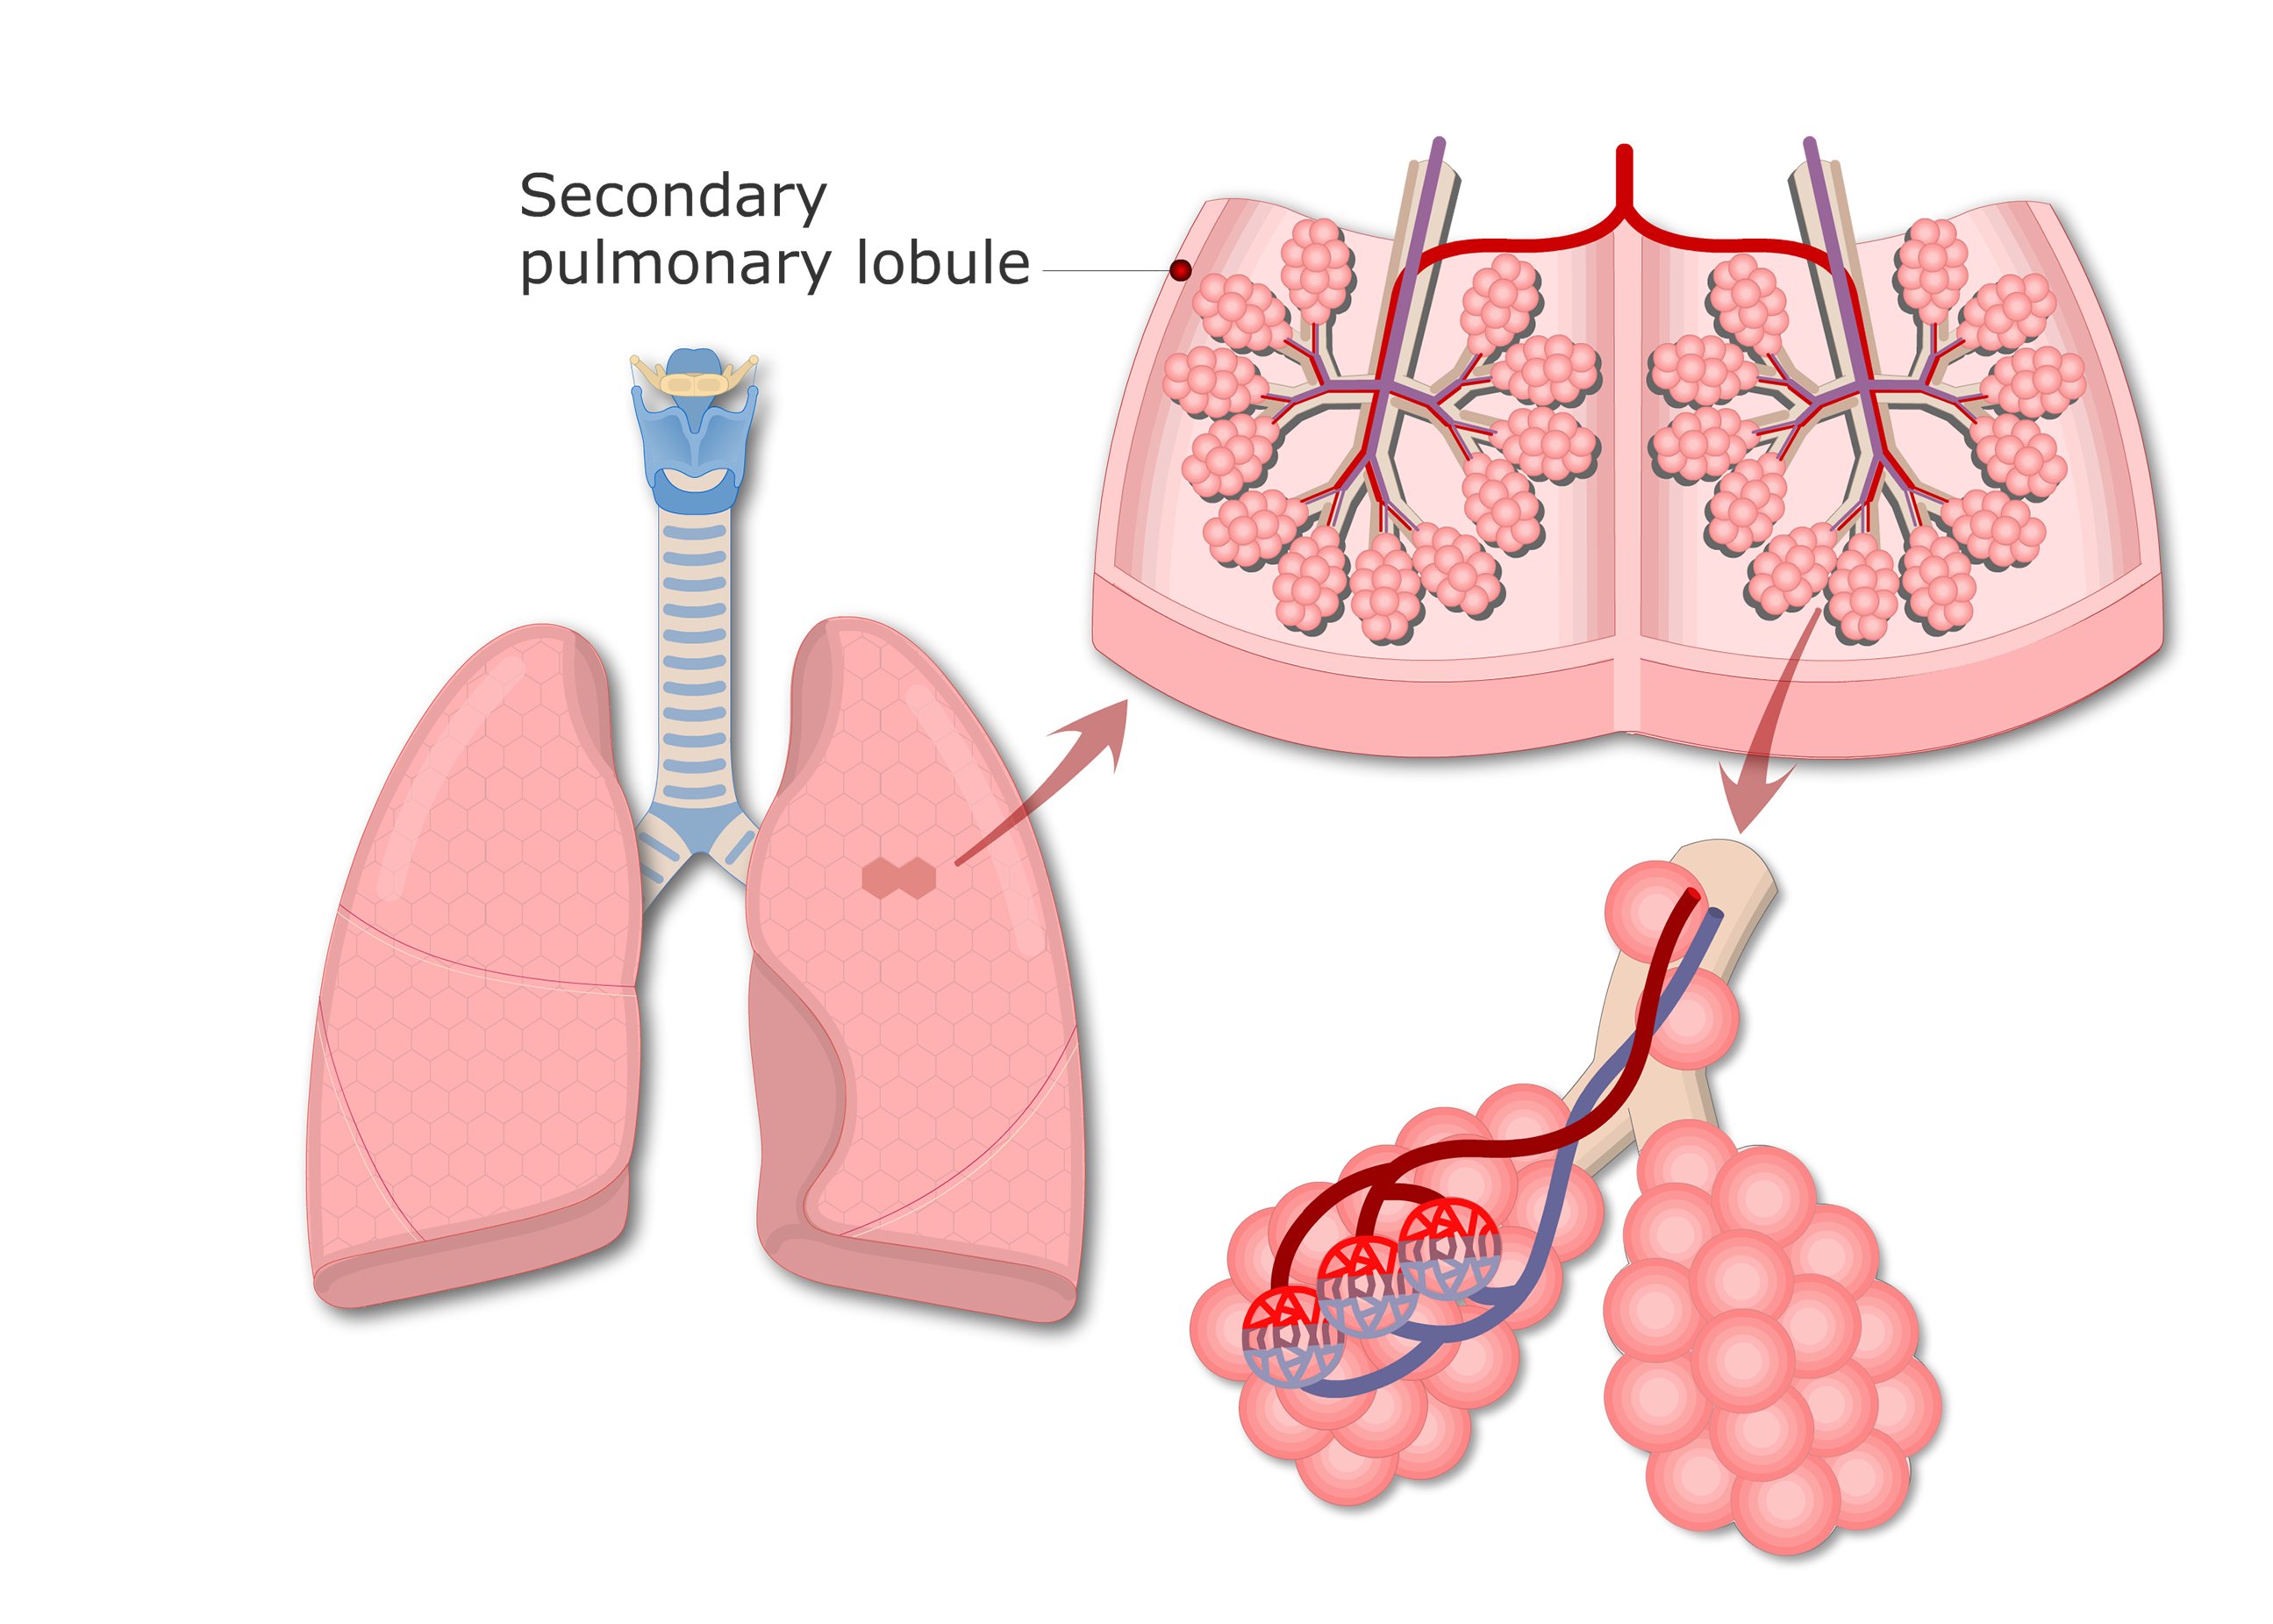 Lung Alveoli - Location of Alveolar Ducts and Alveolar Sacs